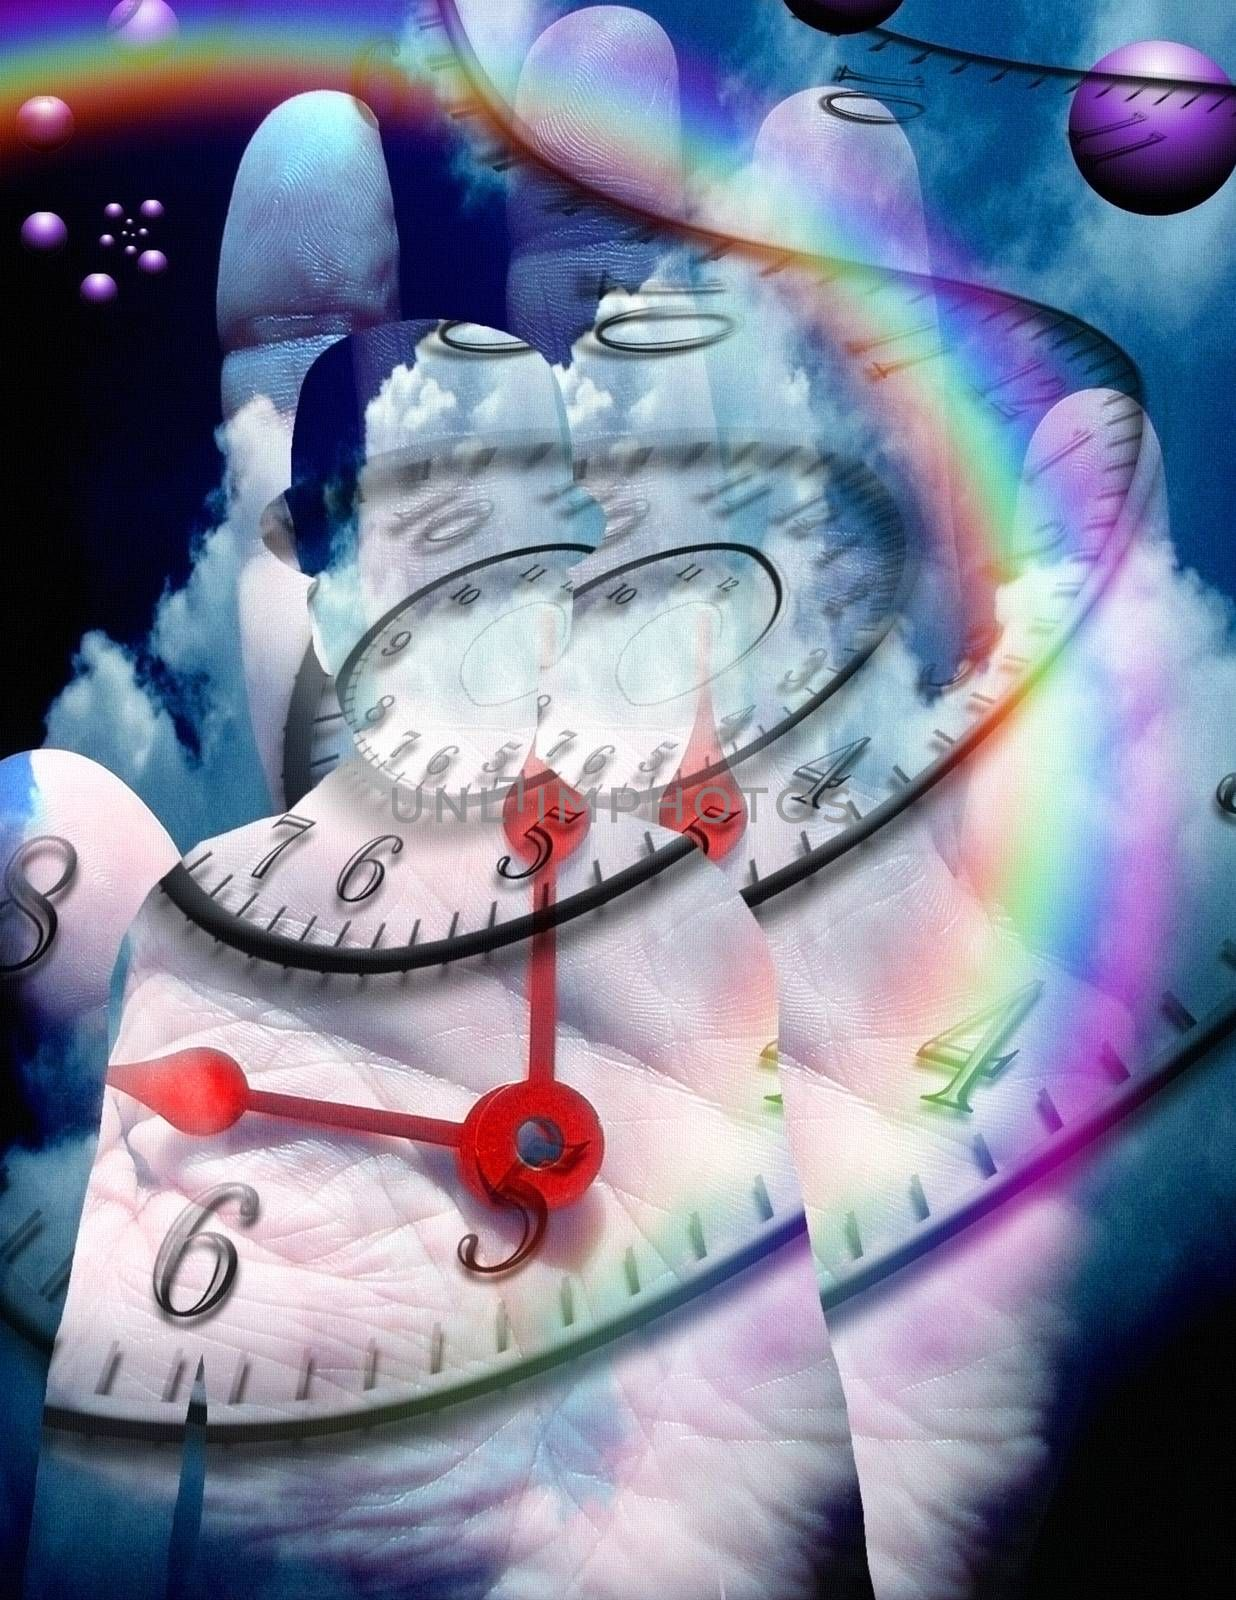 Symbolic composition. Time travel